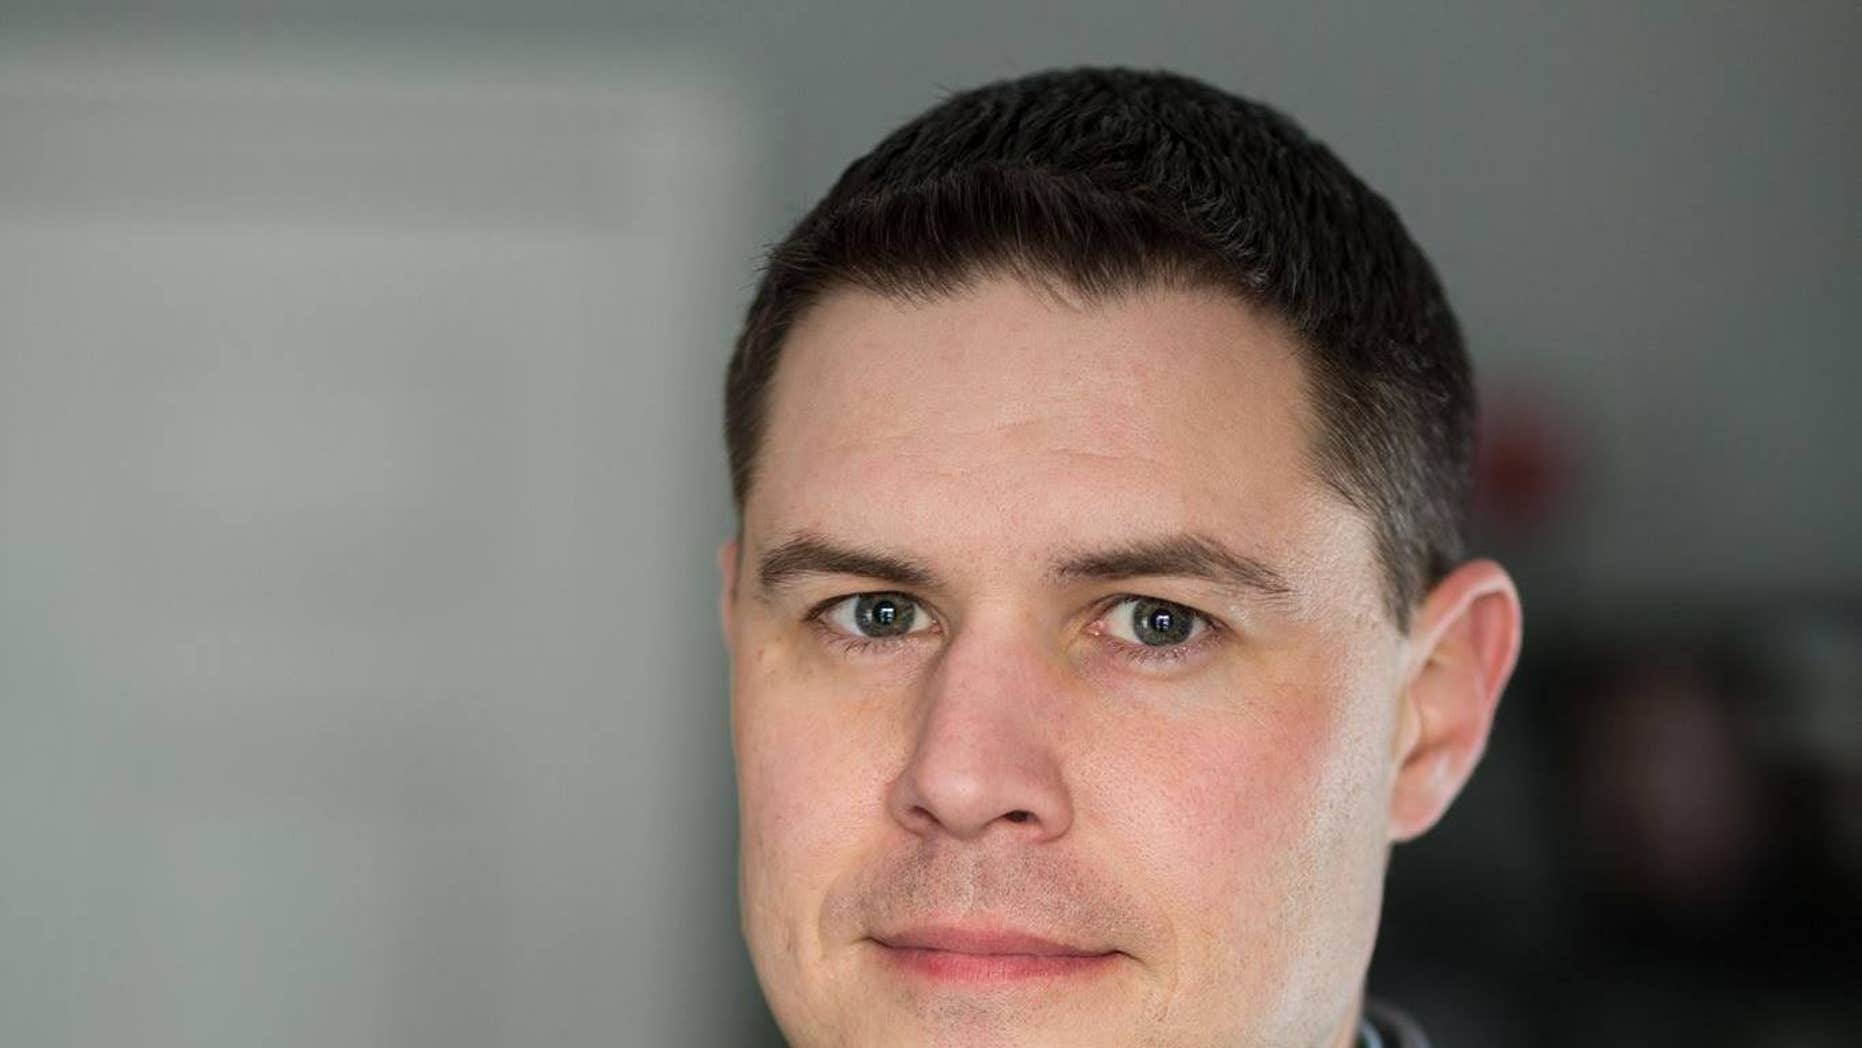 Brian Ellison, a Libertarian candidate who is expected to be the party's candidate in Michigan's upcoming U.S. Senate election, proposes arming homeless people with shotguns.